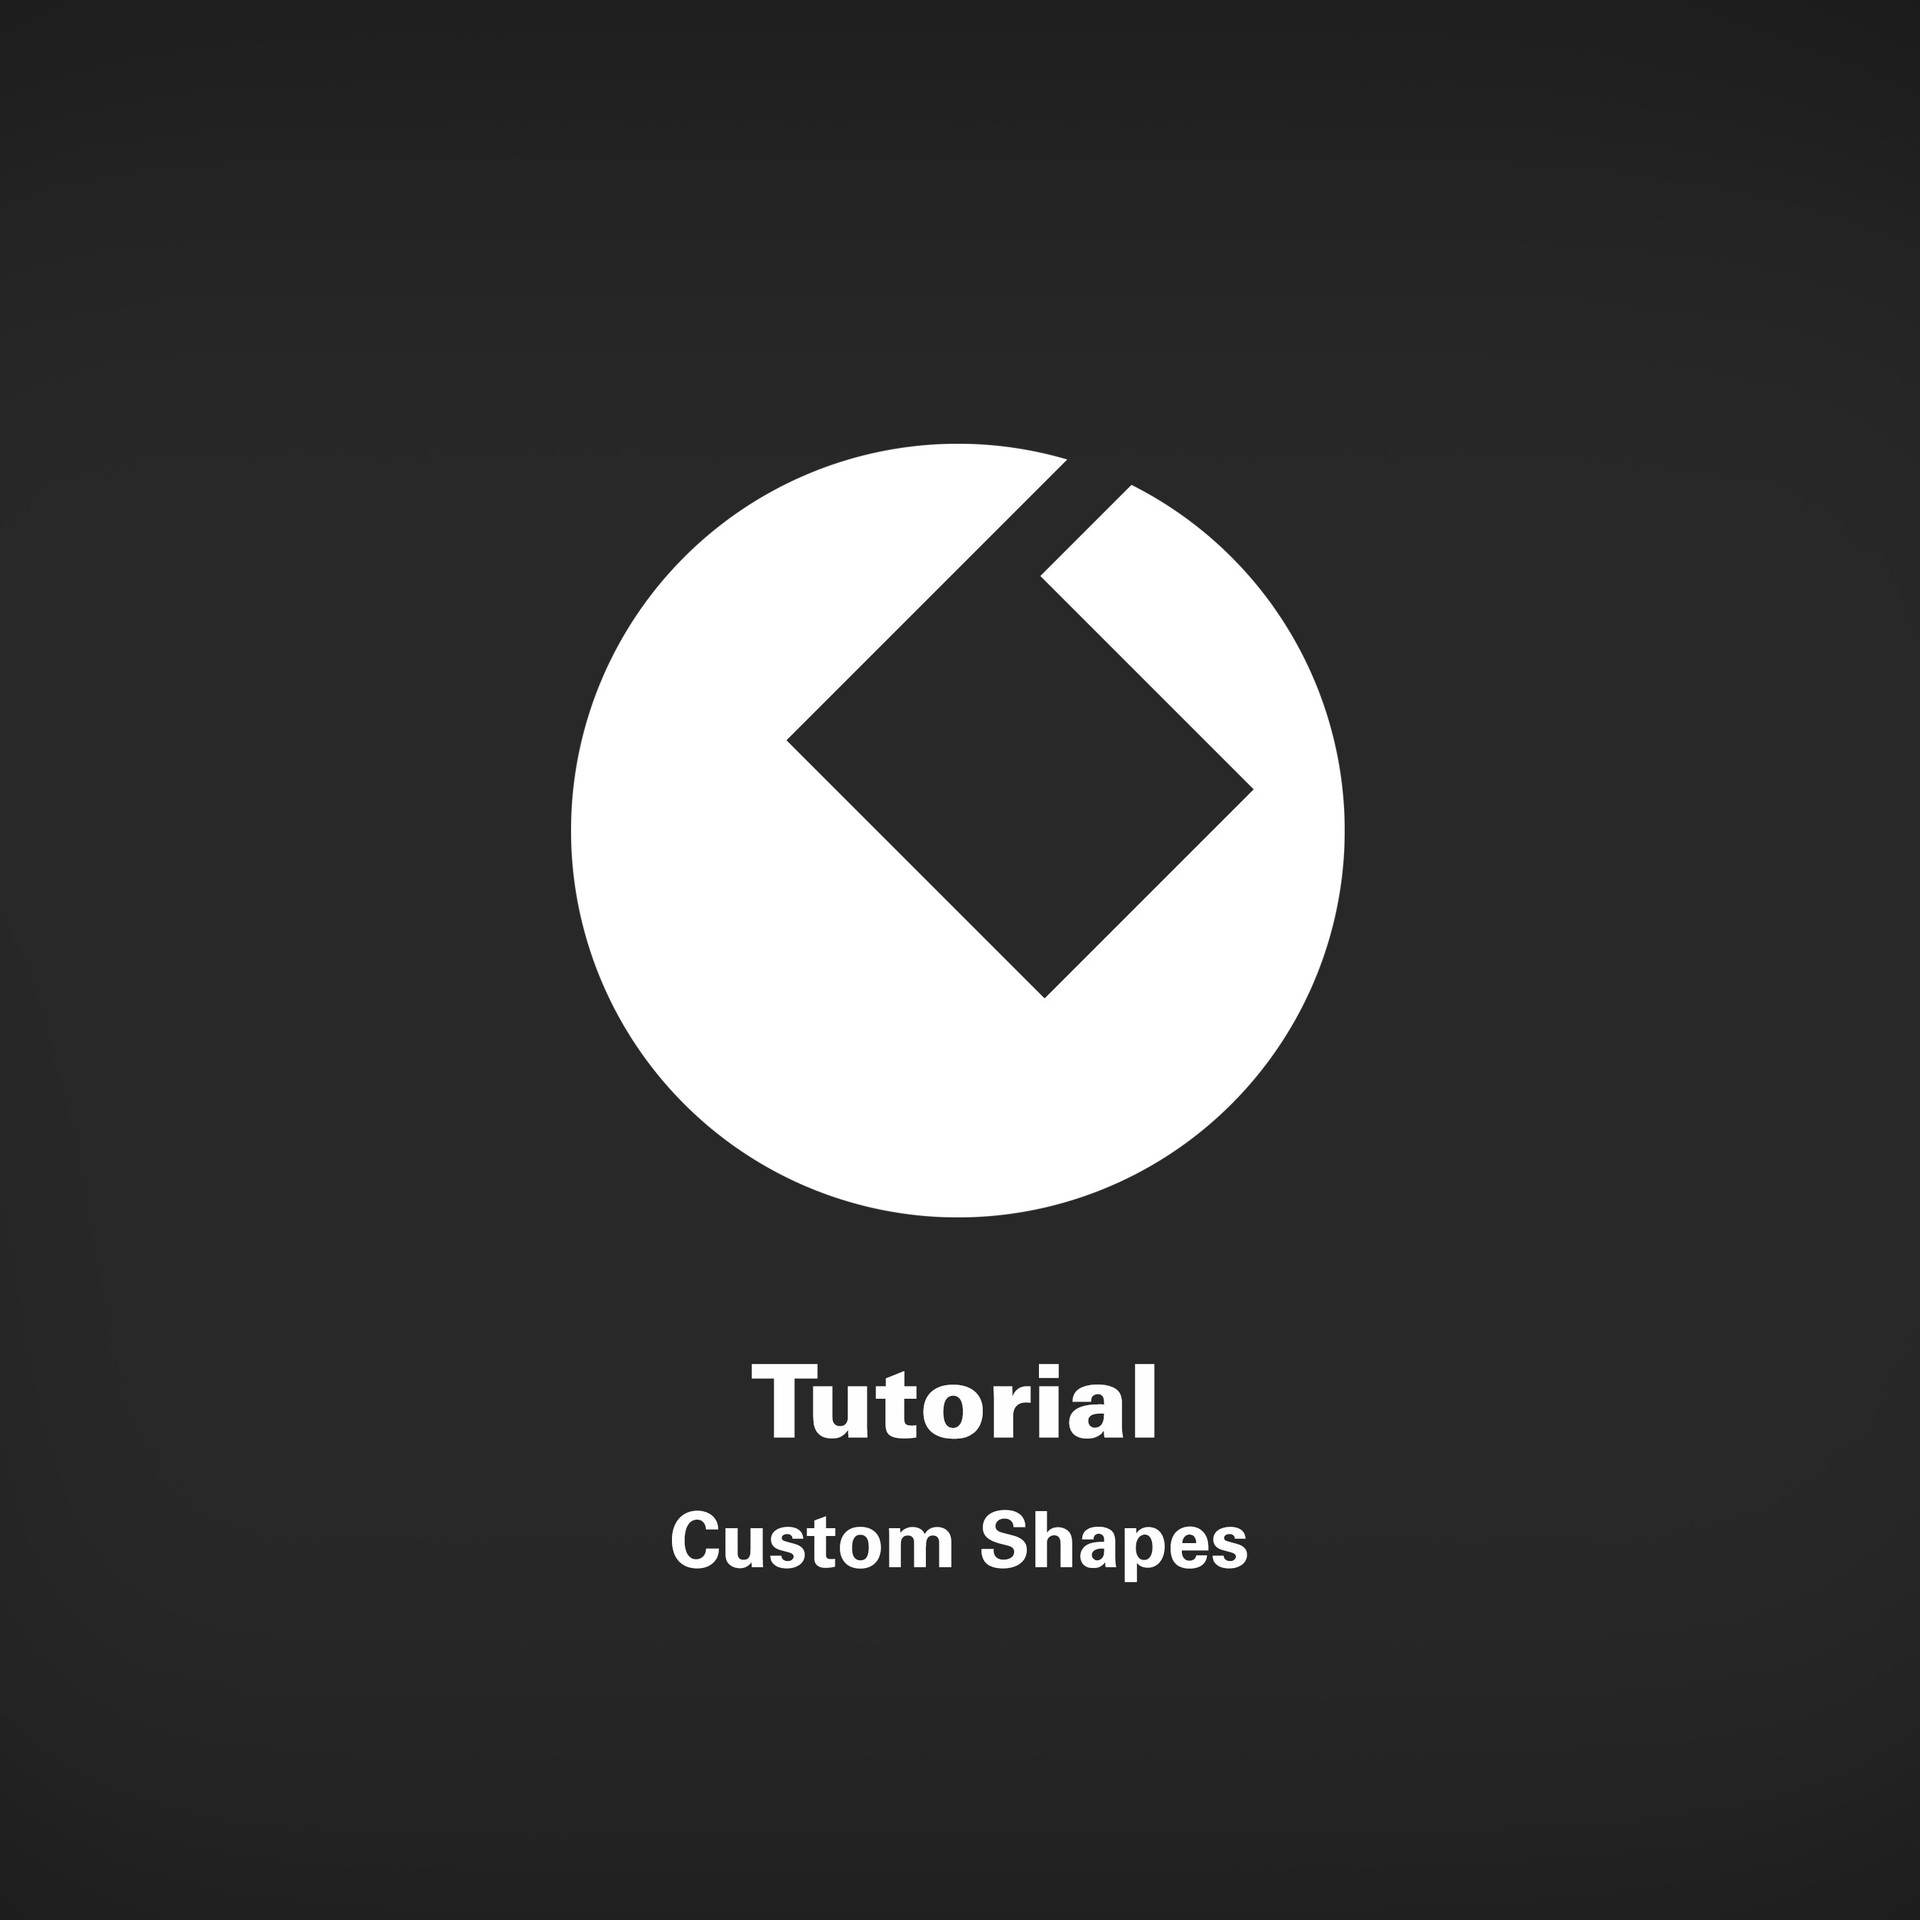 Tutorial: Custom Shapes